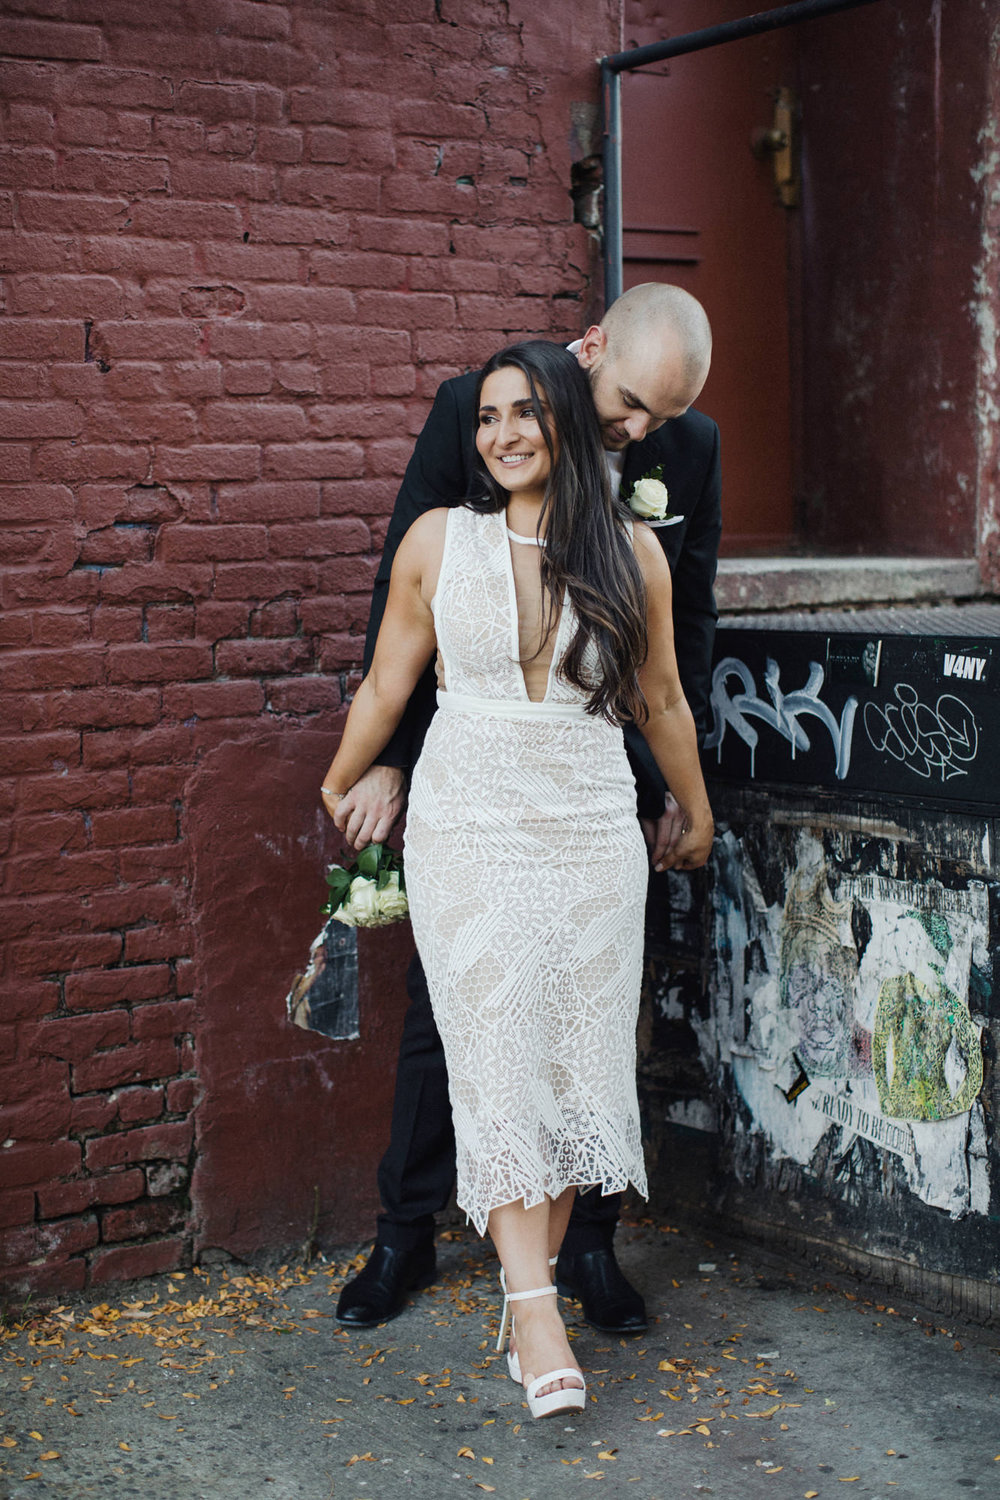 NYC_ELOPEMENT_CITYHALL_BROOKLYN_SAMMBLAKE_0045.jpg